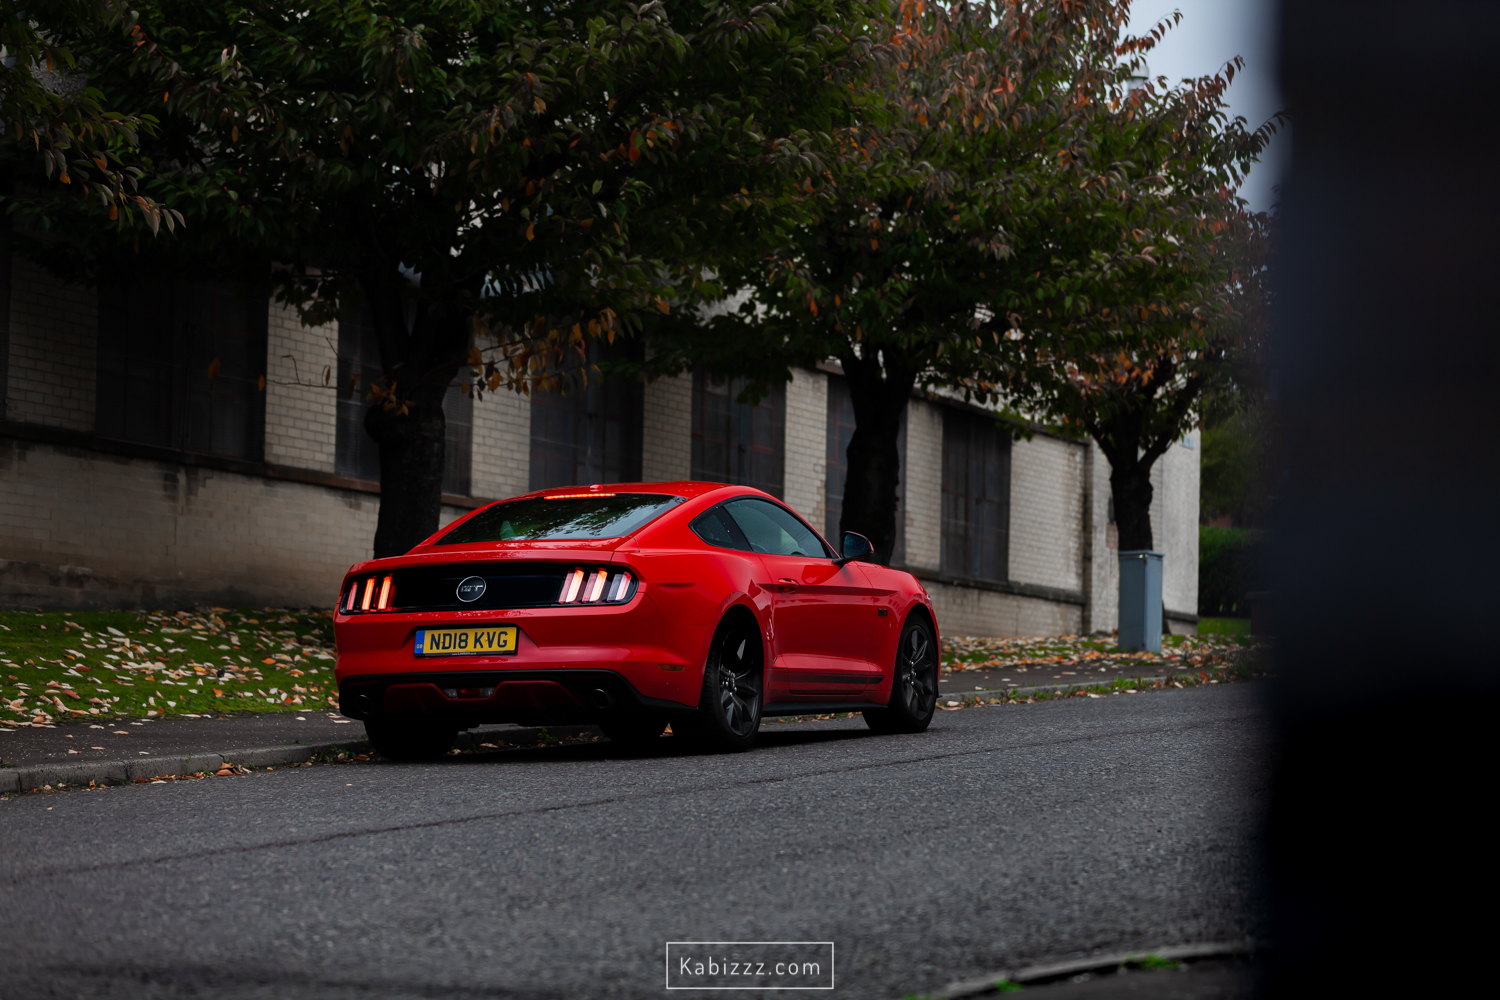 2018_ford_mustang_red_scotland_photography_automotive_photography_kabizzz-6.jpg